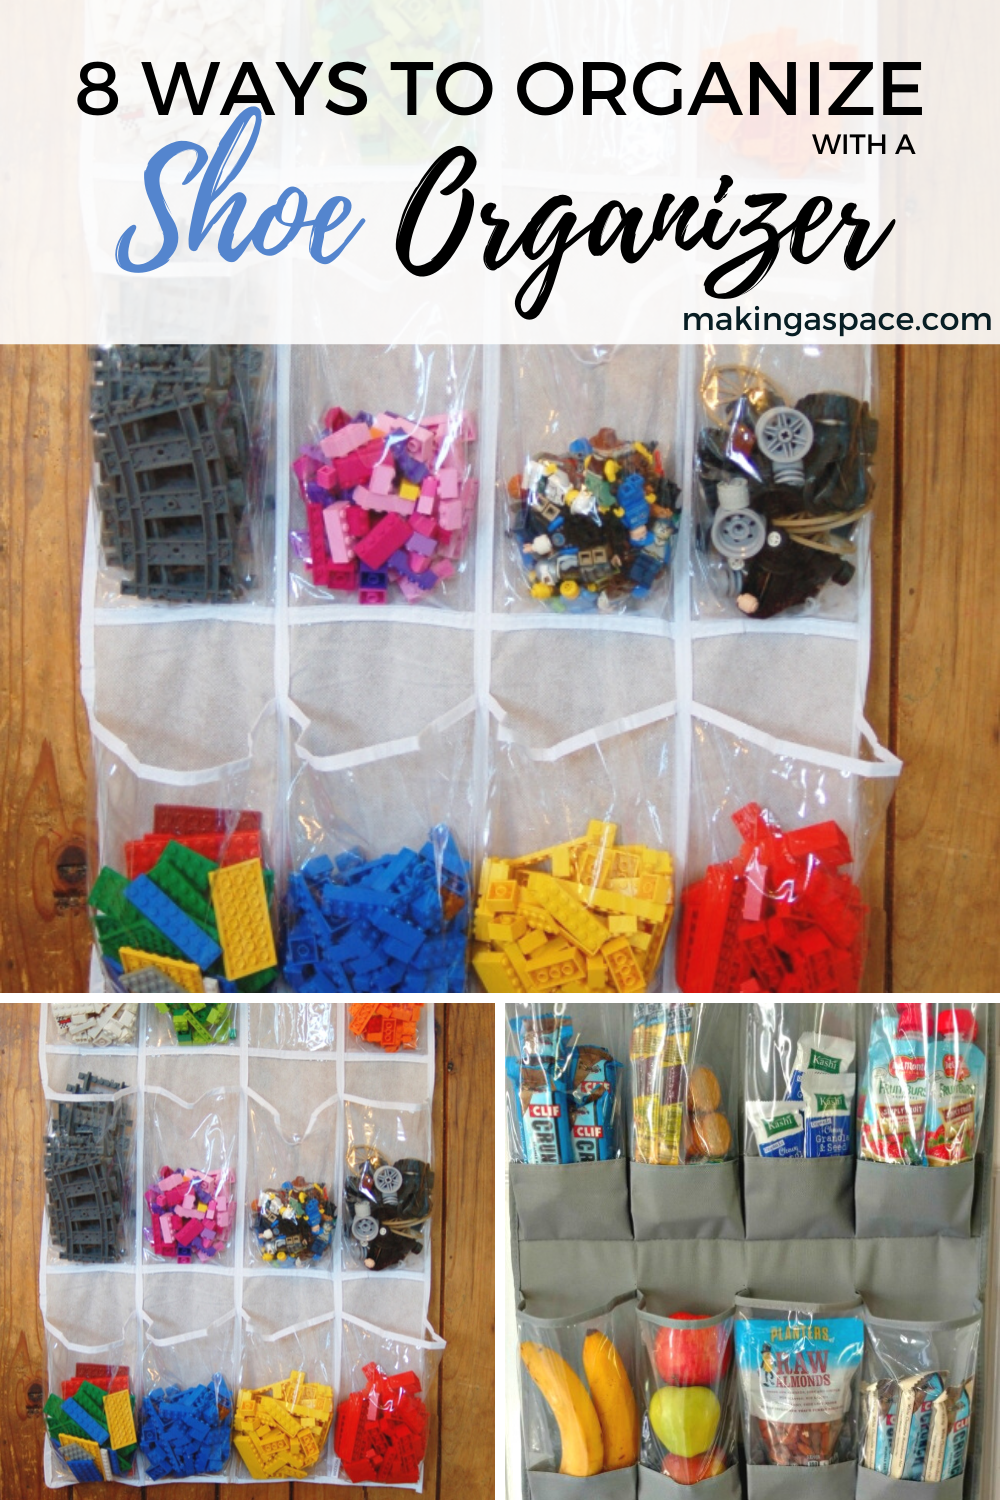 alternative uses for hanging shoe organizer